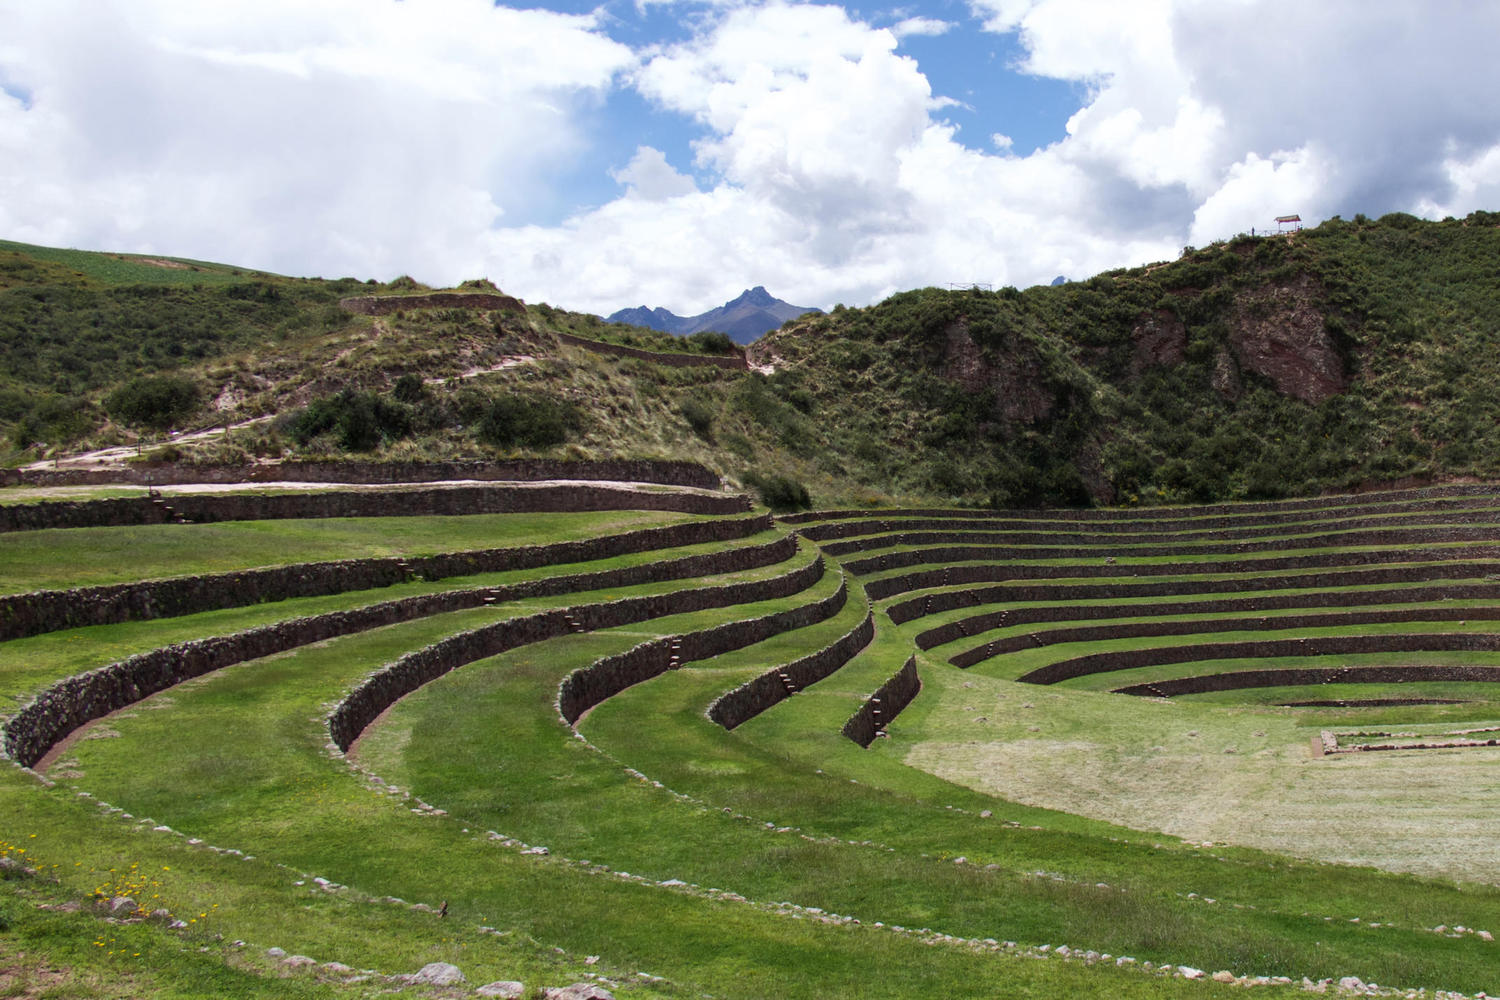 The deep circular terraces at Moray are believed to have been used to grow crops from a range of climates